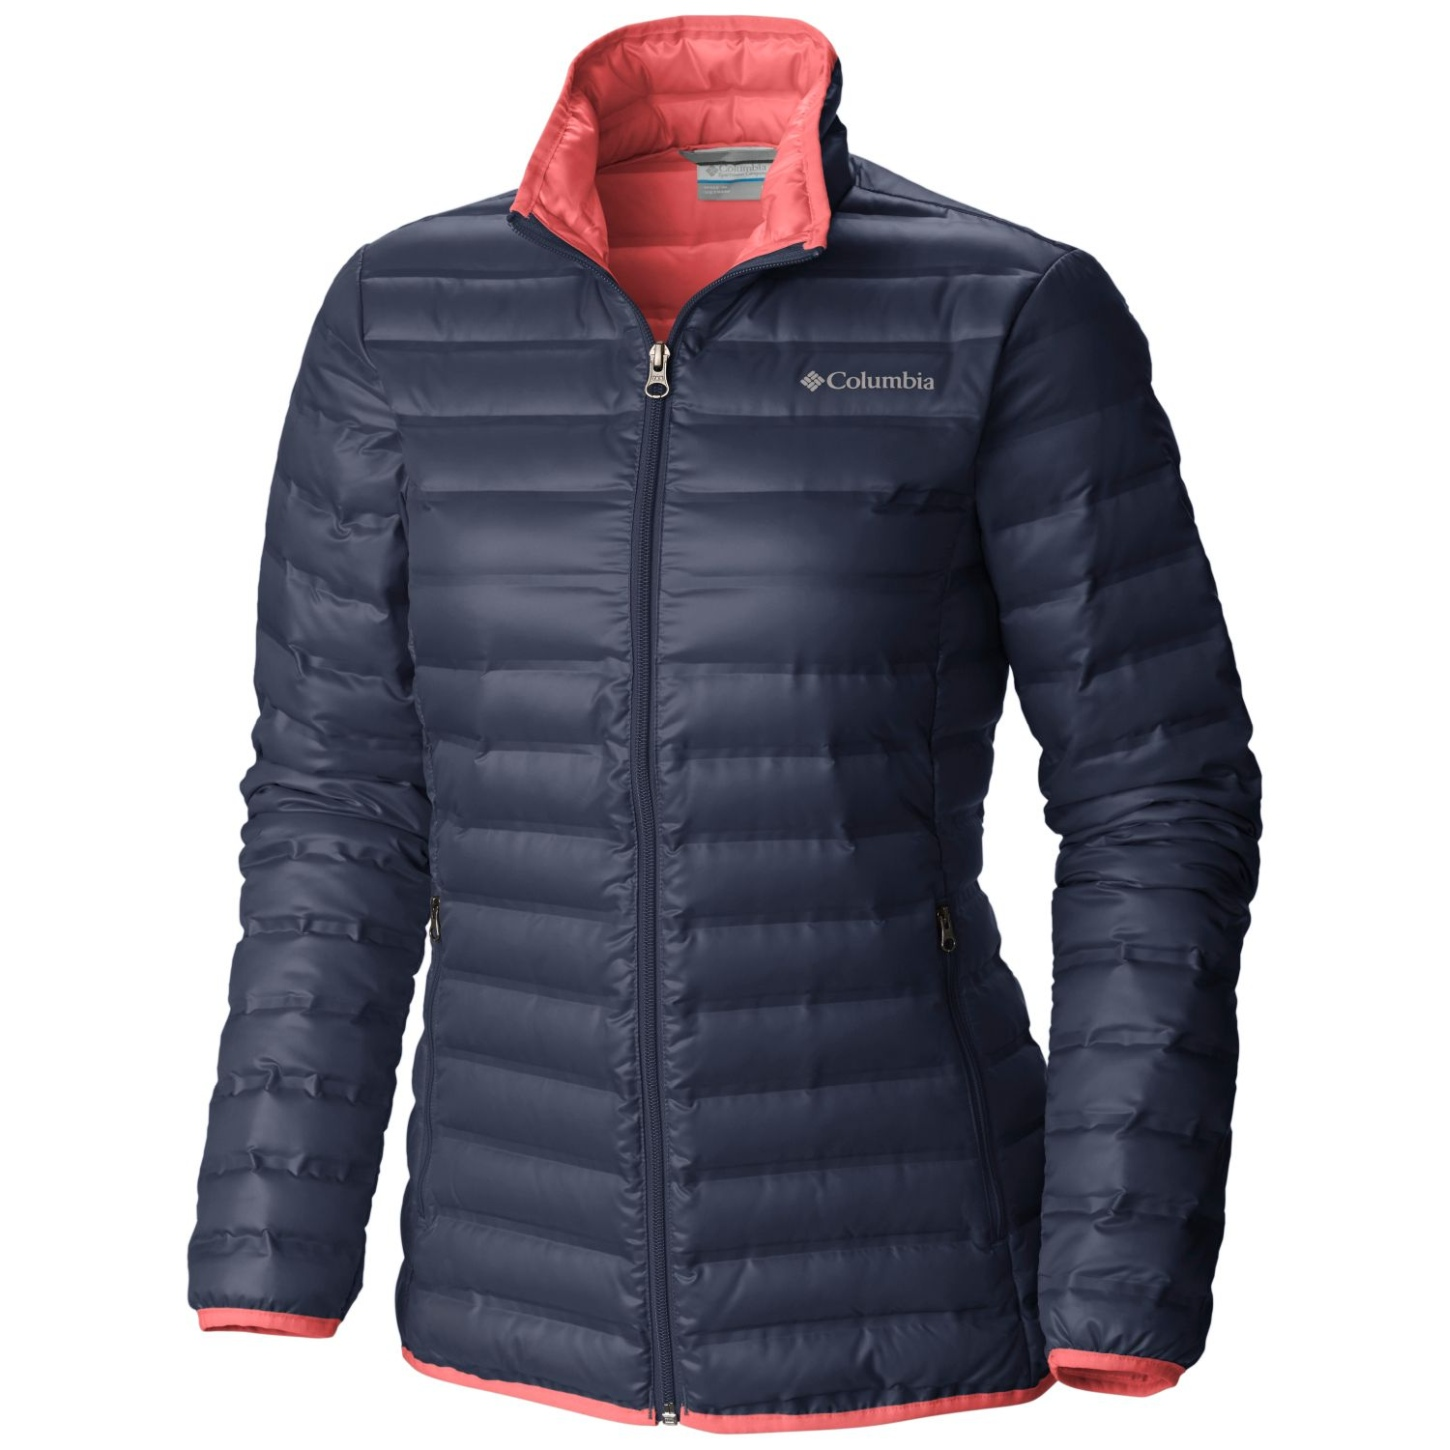 Columbia Women's Flash Forward Down Jacket Nocturnal, Hot Coral-30